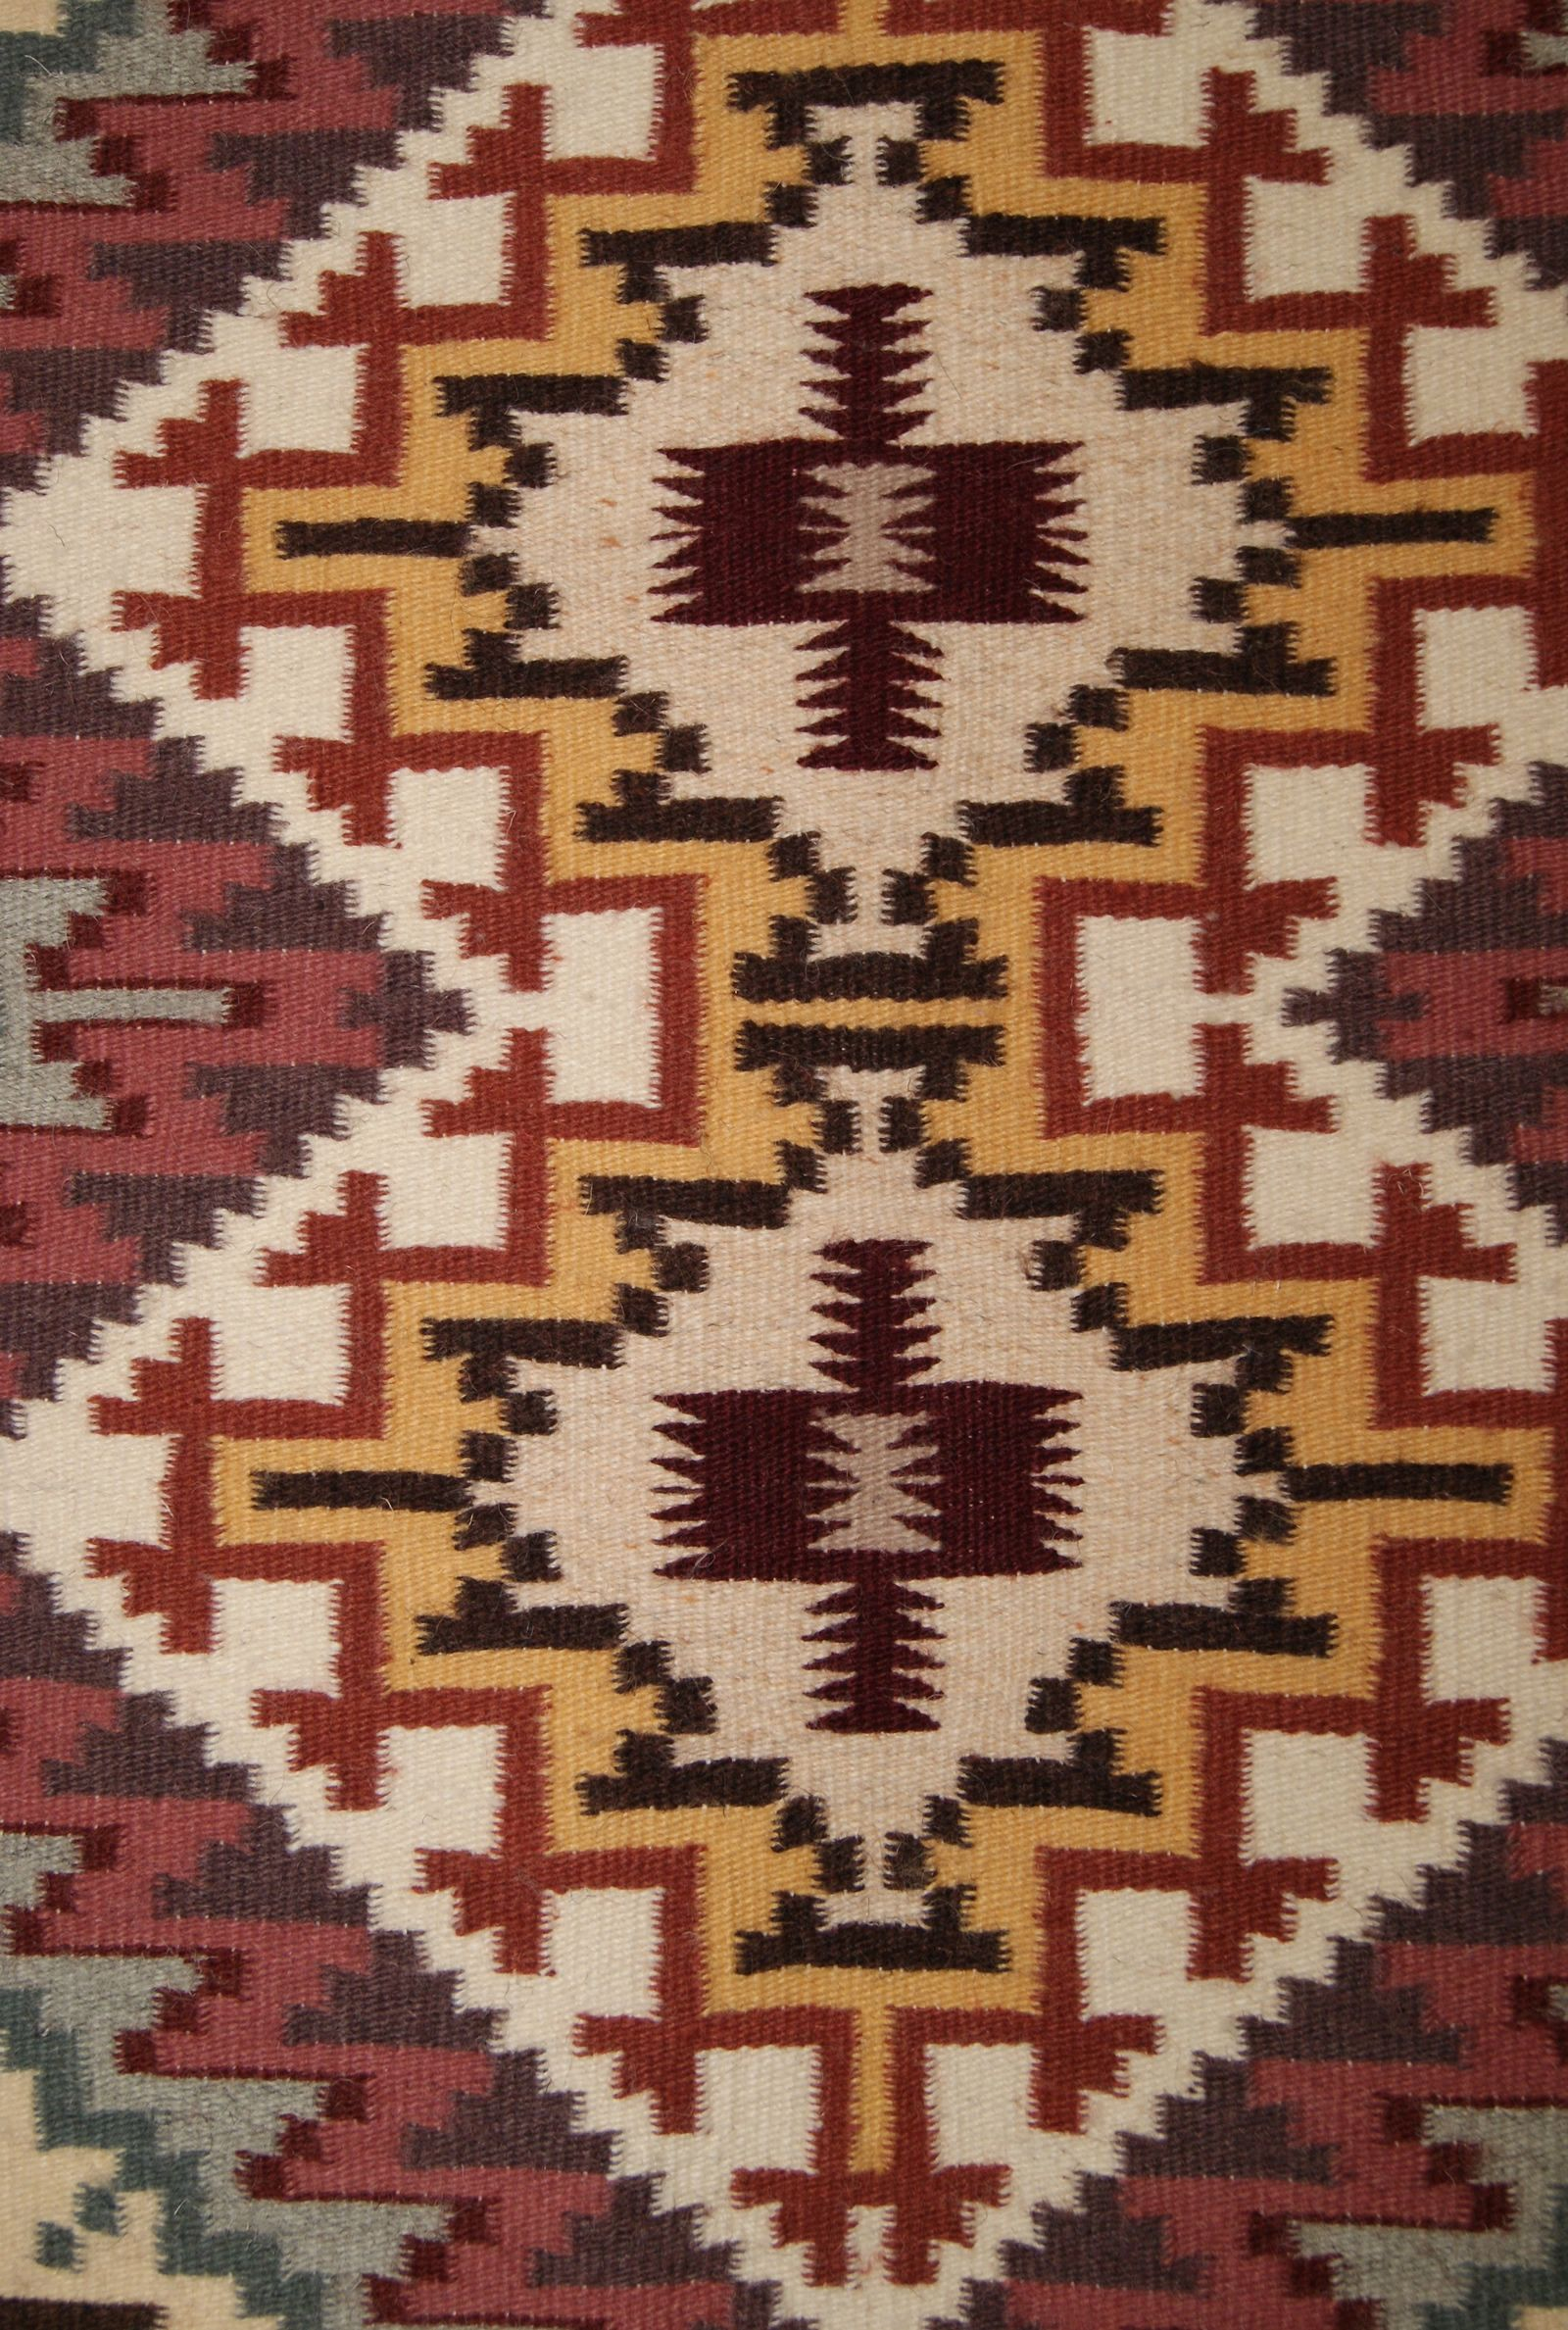 Burntwater navajo weaving for sale kilim weaving 2 motifs burntwater navajo weaving for sale biocorpaavc Images